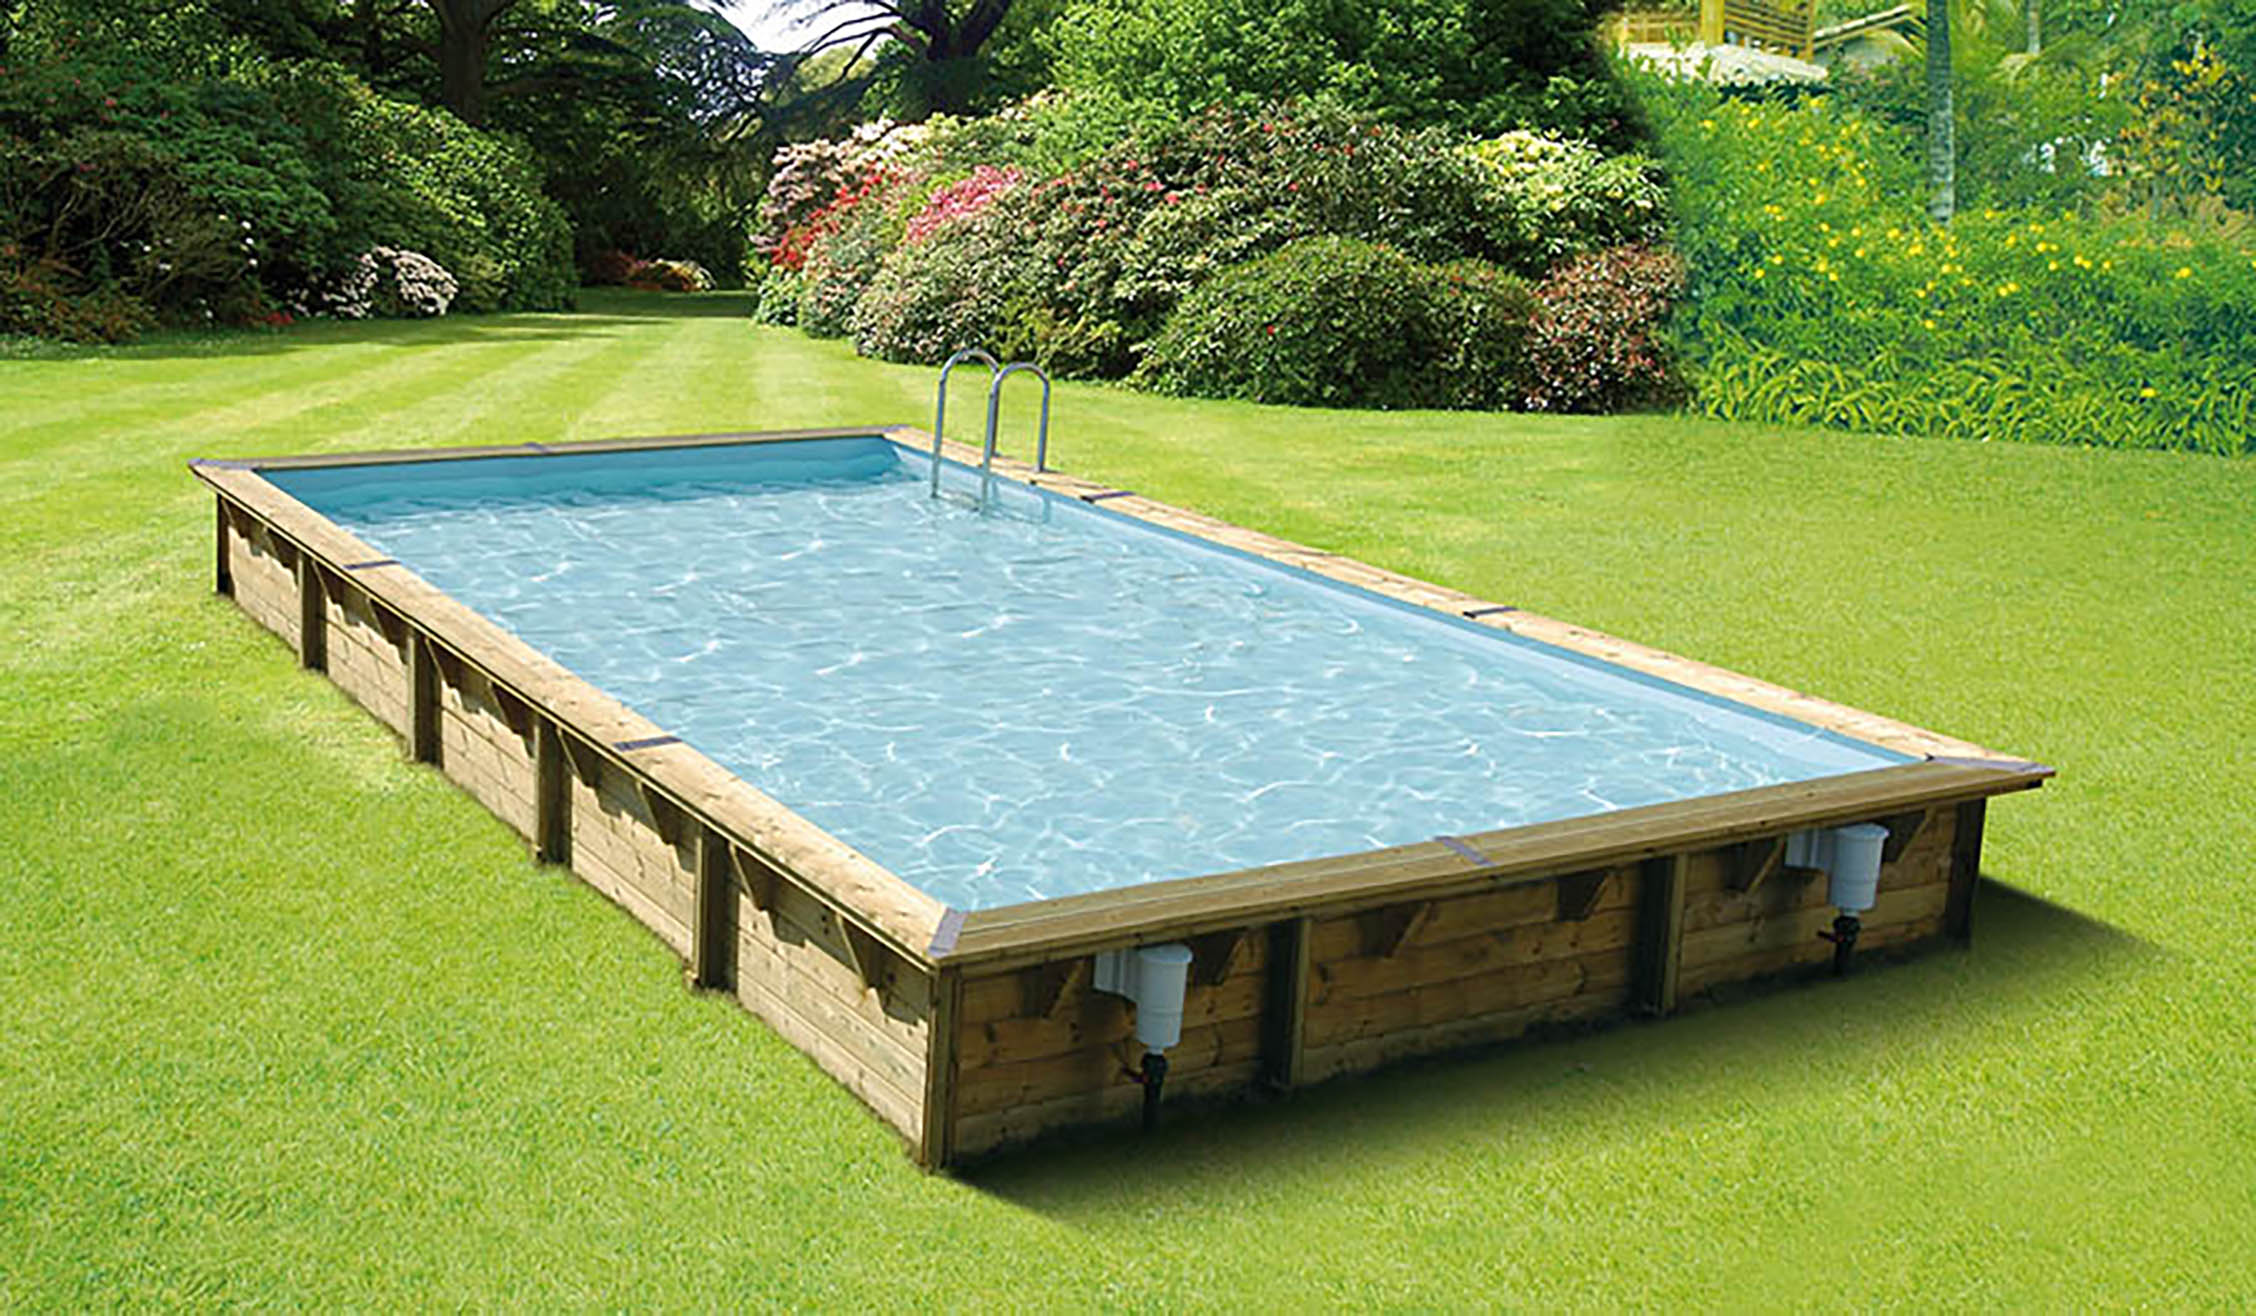 Construction piscines nimes gepad piscines et spa 30000 for Piscine en bois occasion